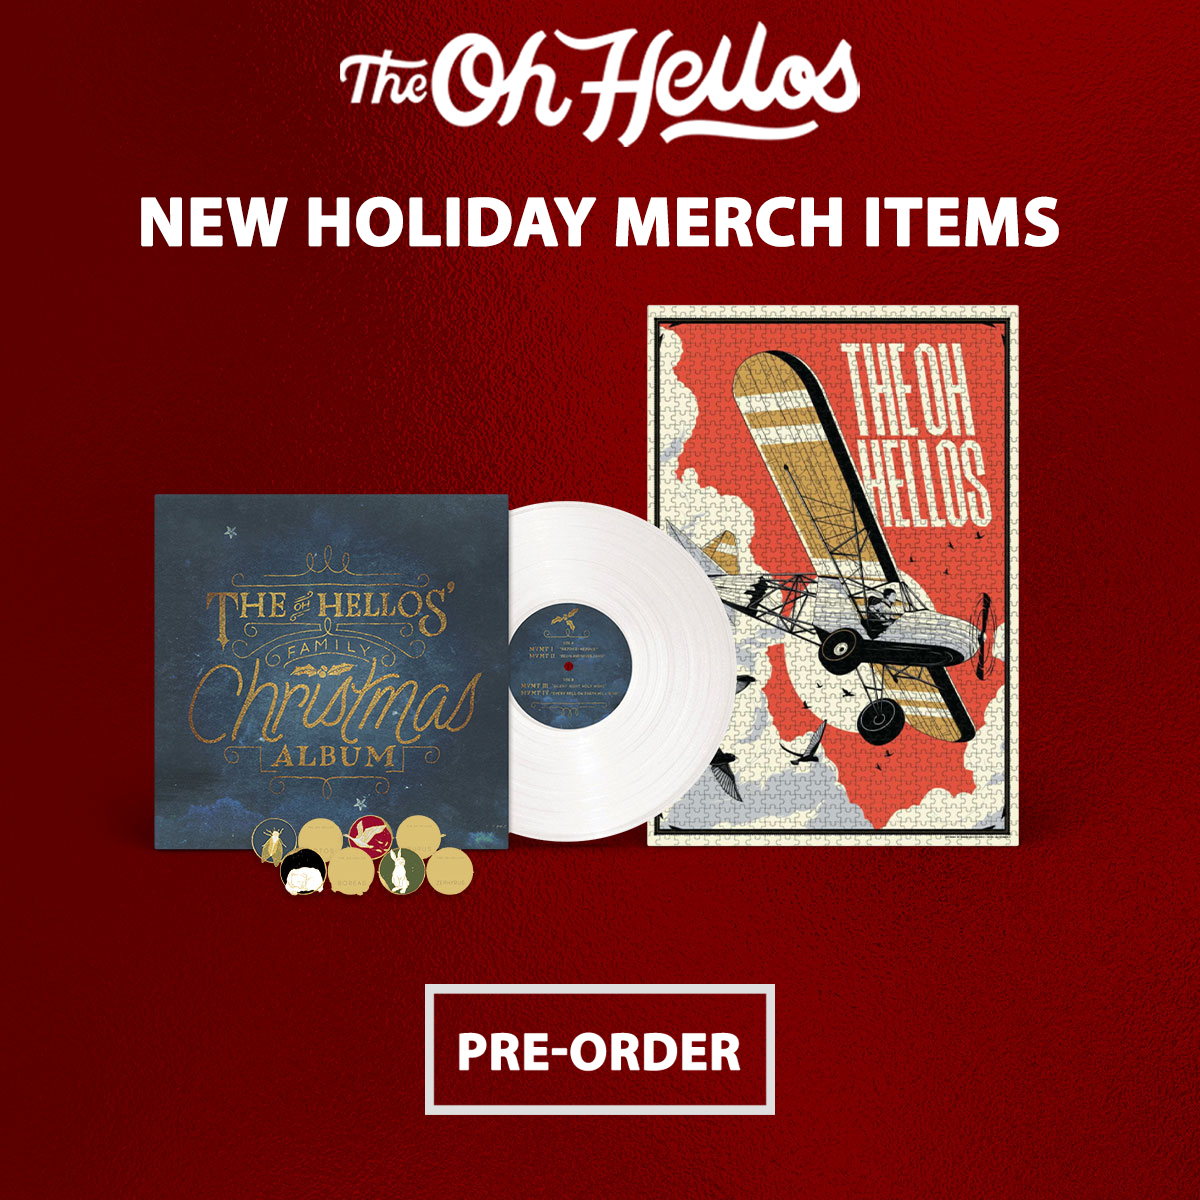 The Oh Hellos - Holiday Products - 20% OFf STorewide. Exclusions Apply. Shop Now